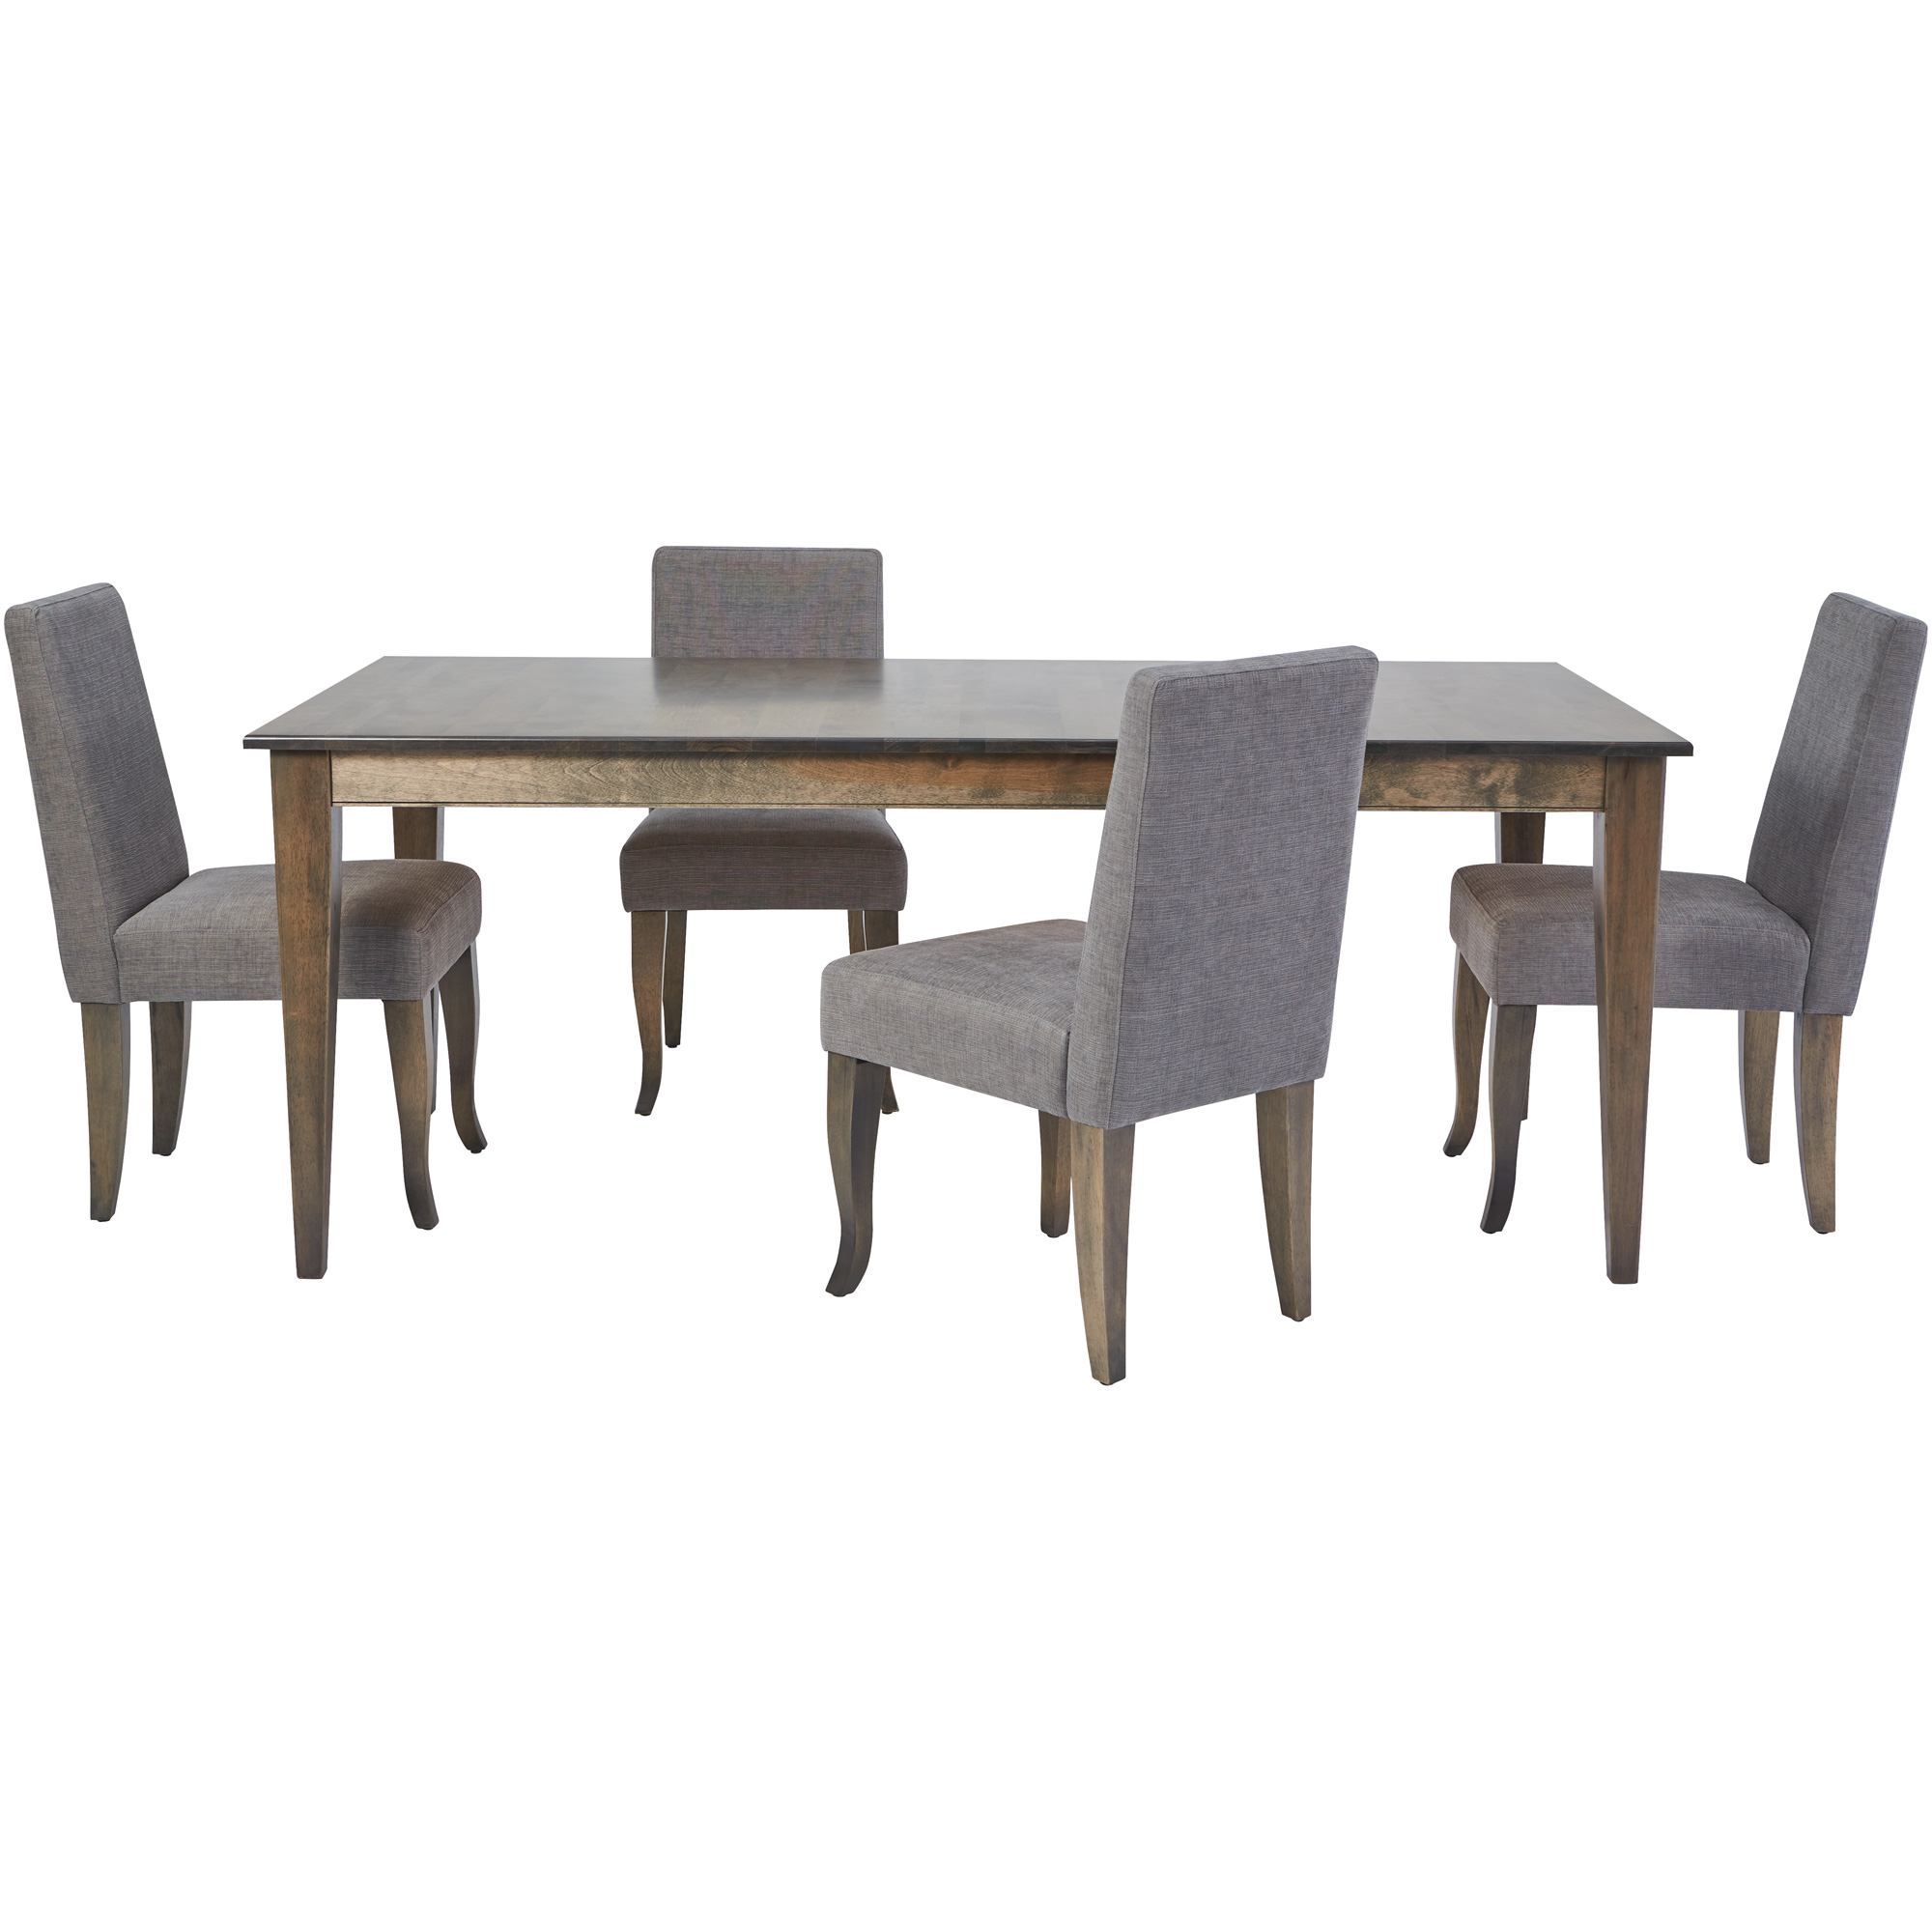 Canadel Furniture | Malibu Gray 5 Piece Dining Set